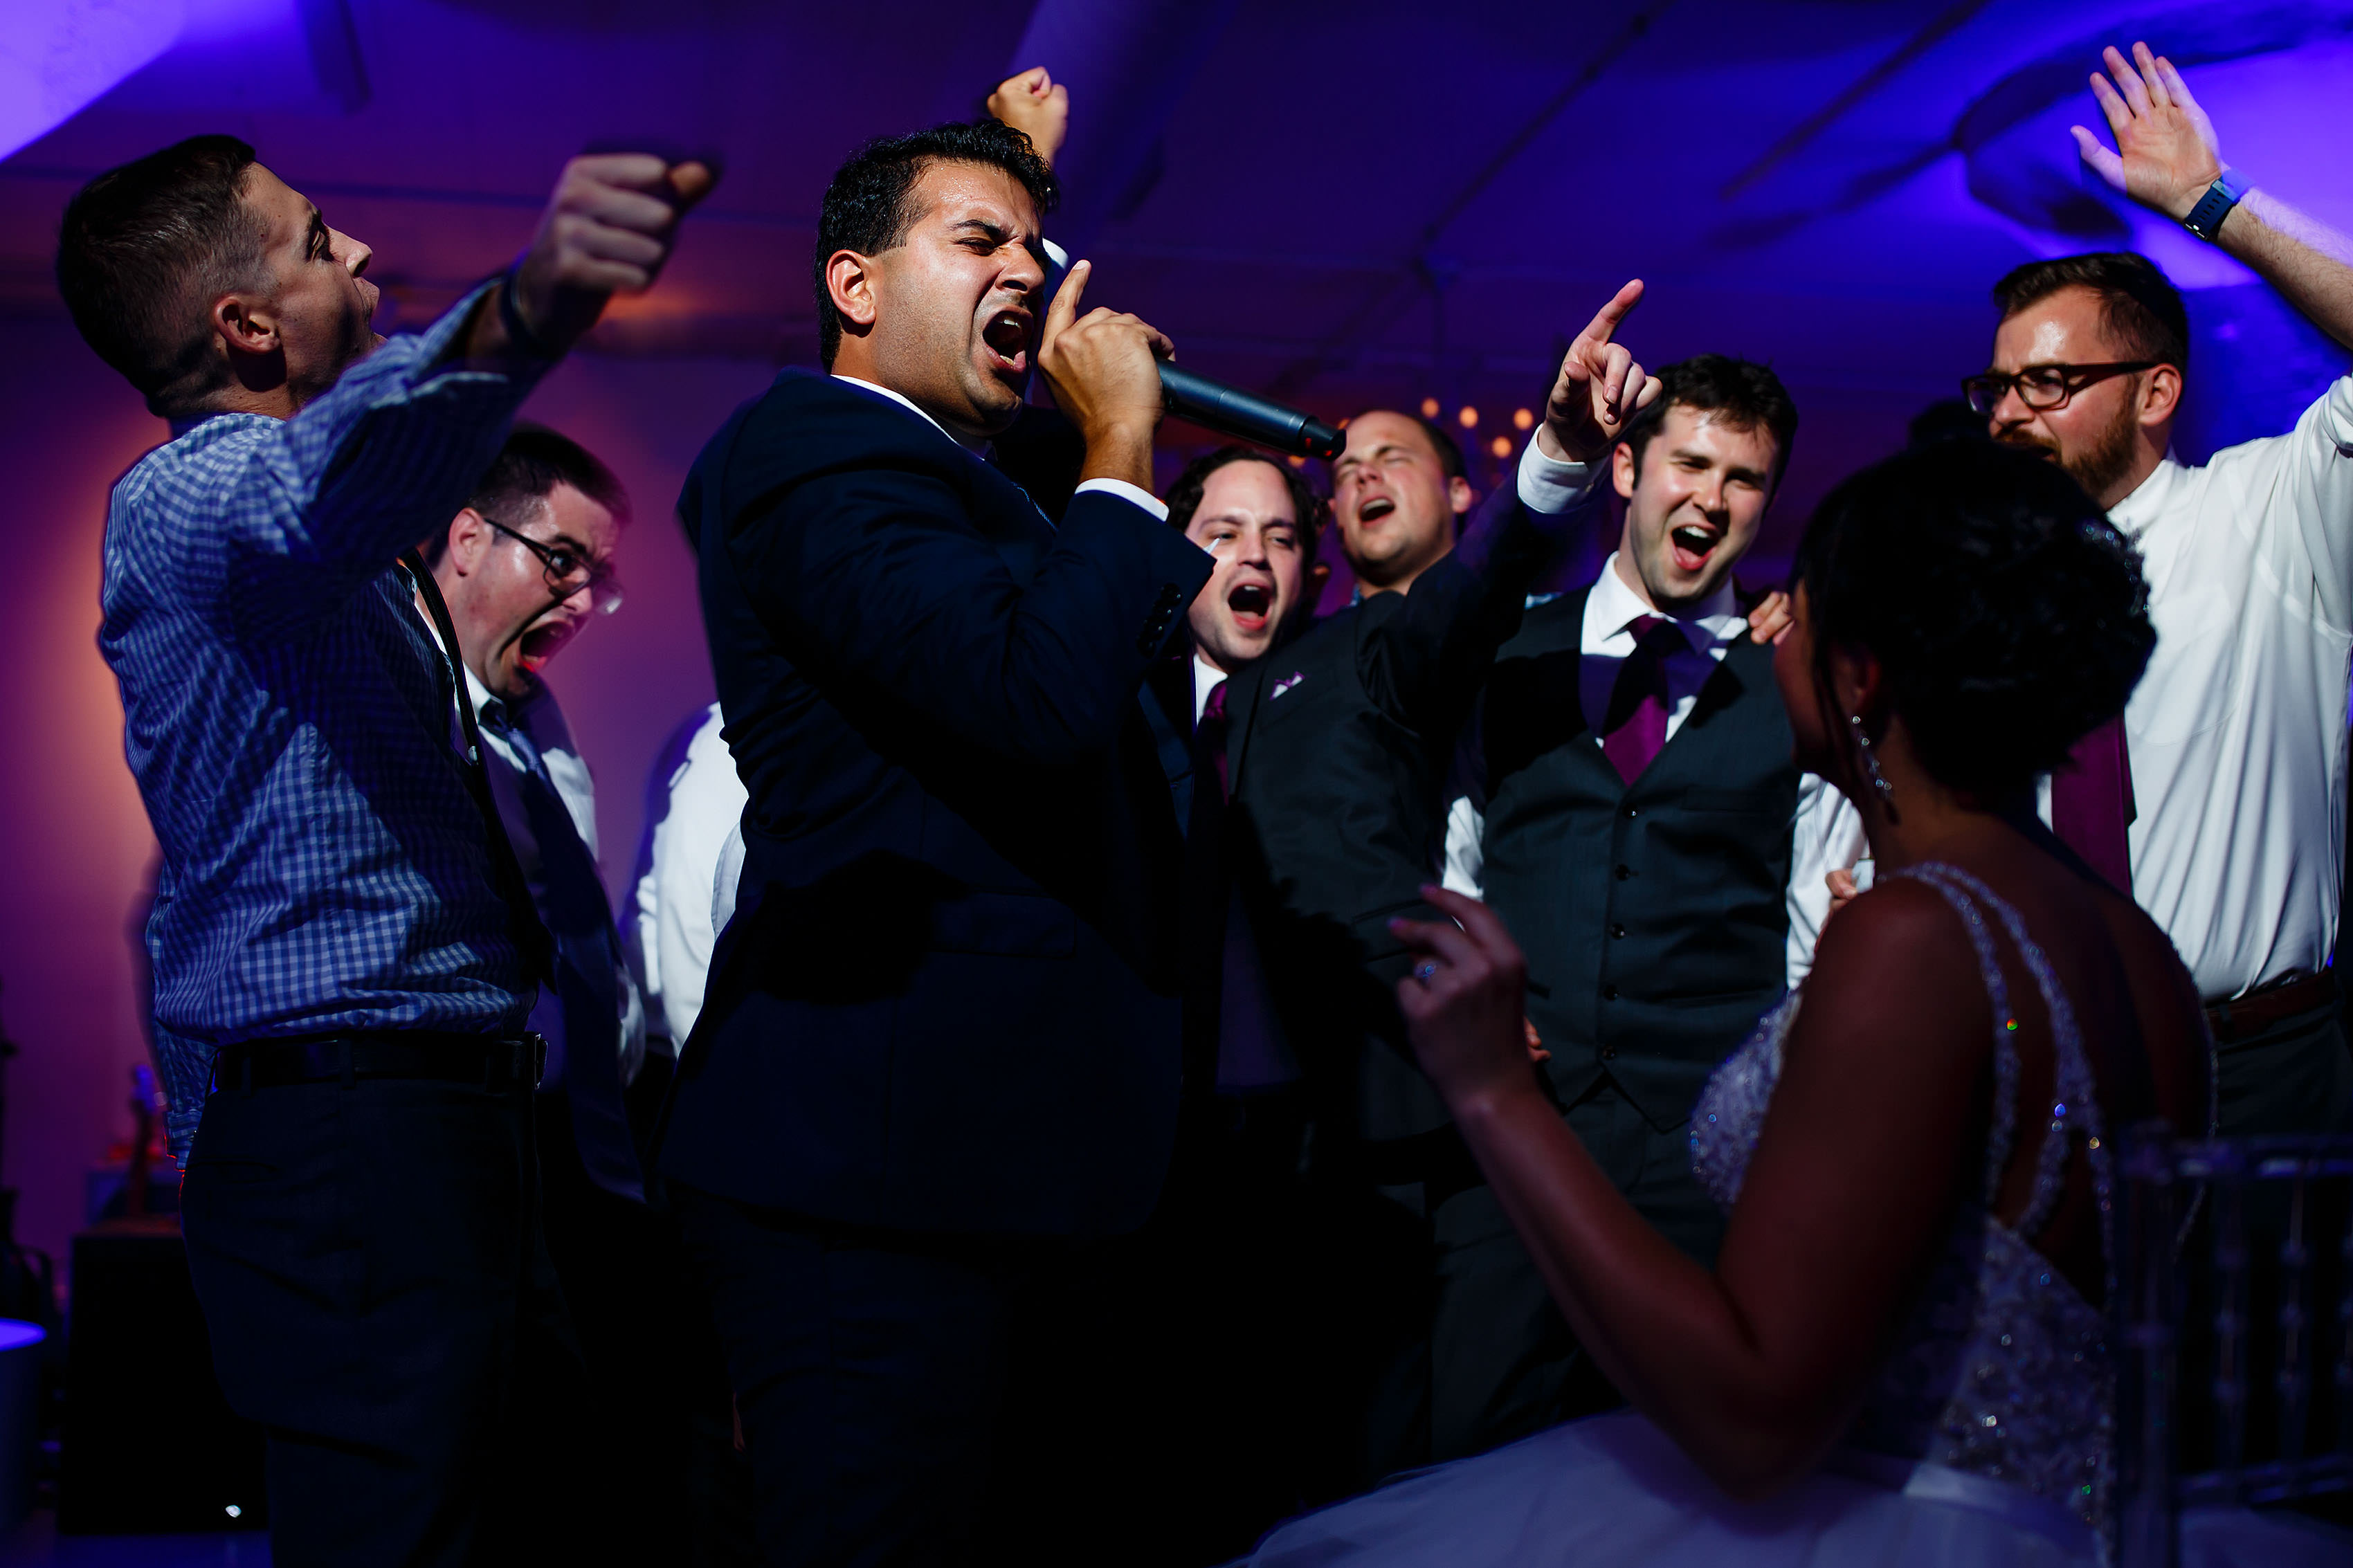 Guests dance during a wedding at Room 1520 in Chicago